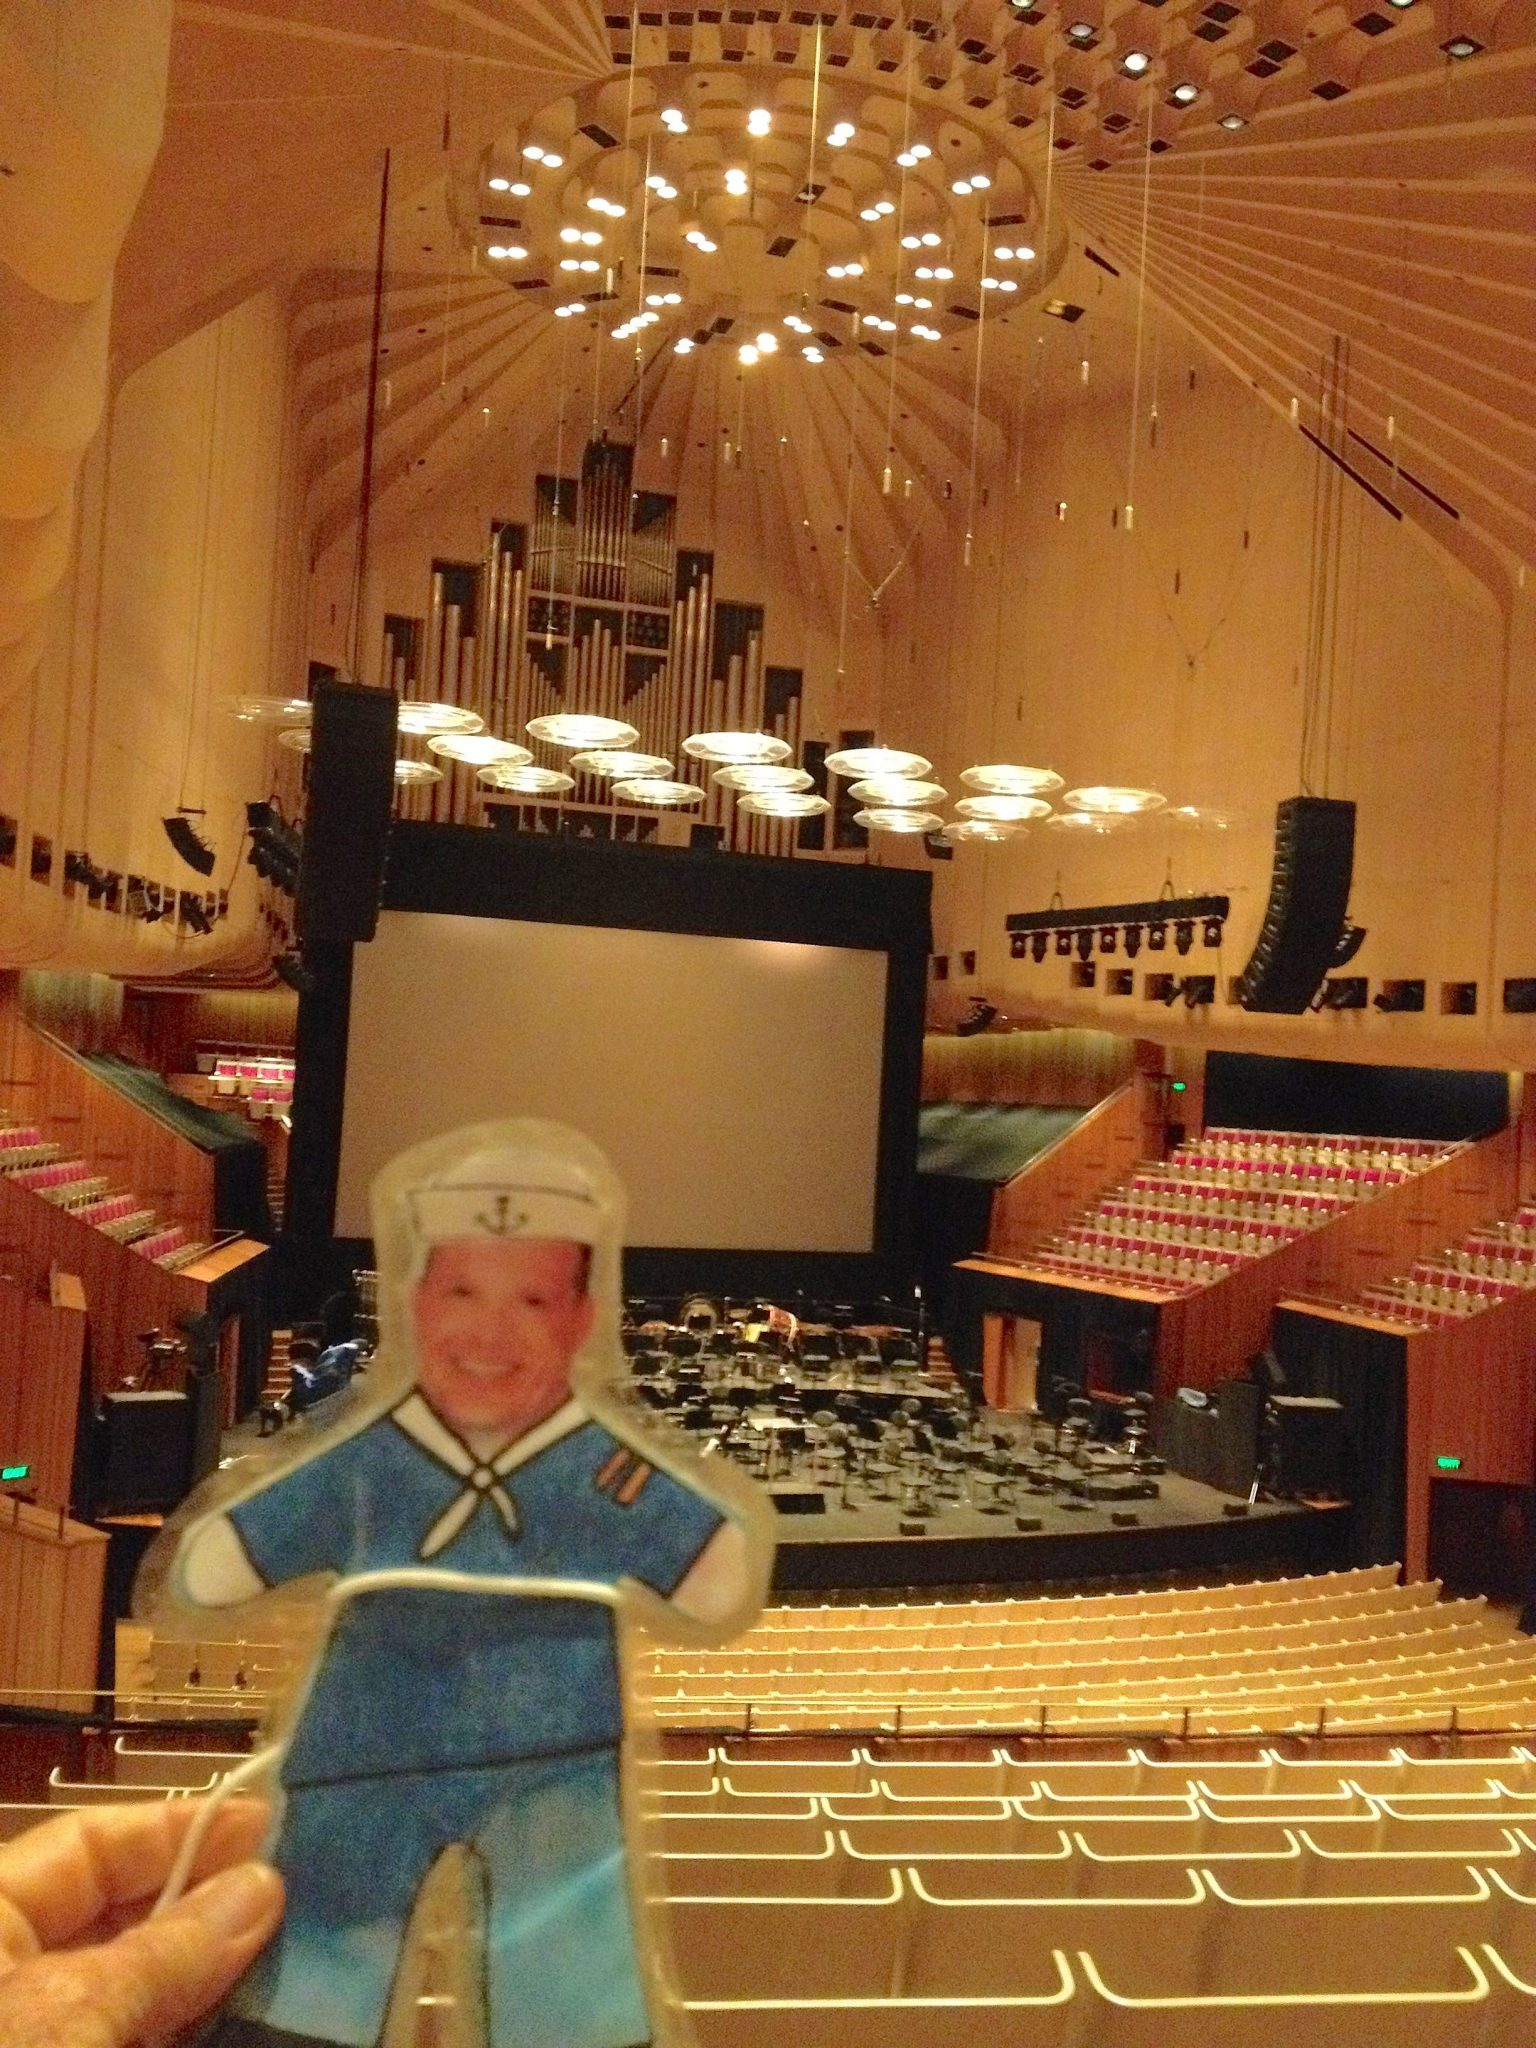 110. Flat Mr. Davis could have his photo taken in the concert hall because it was between events